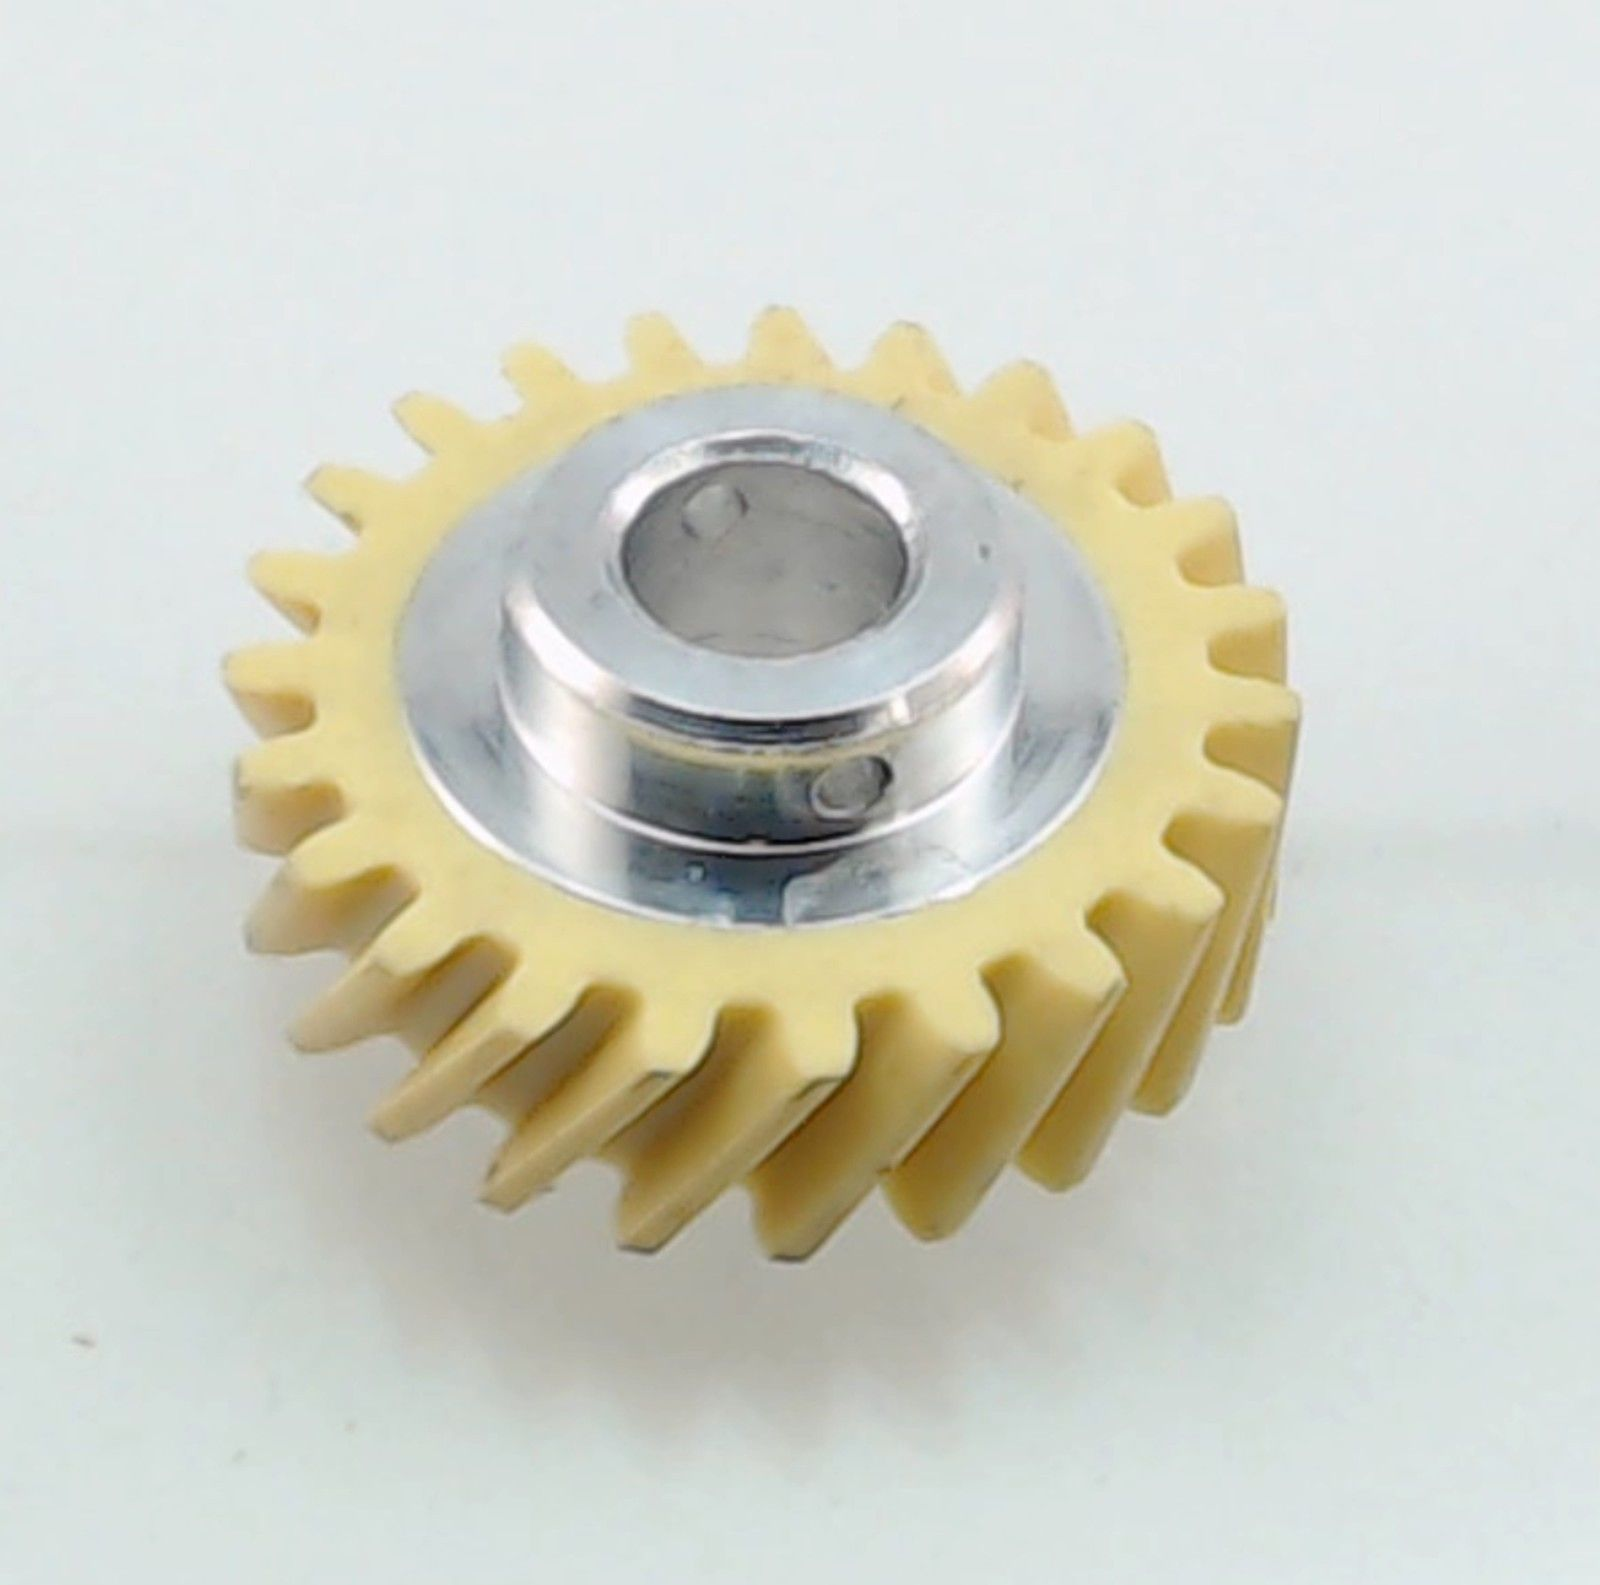 Stand Mixer Fiber Worm Gear for KitchenAid , AP4295669, PS1491159, W10112253